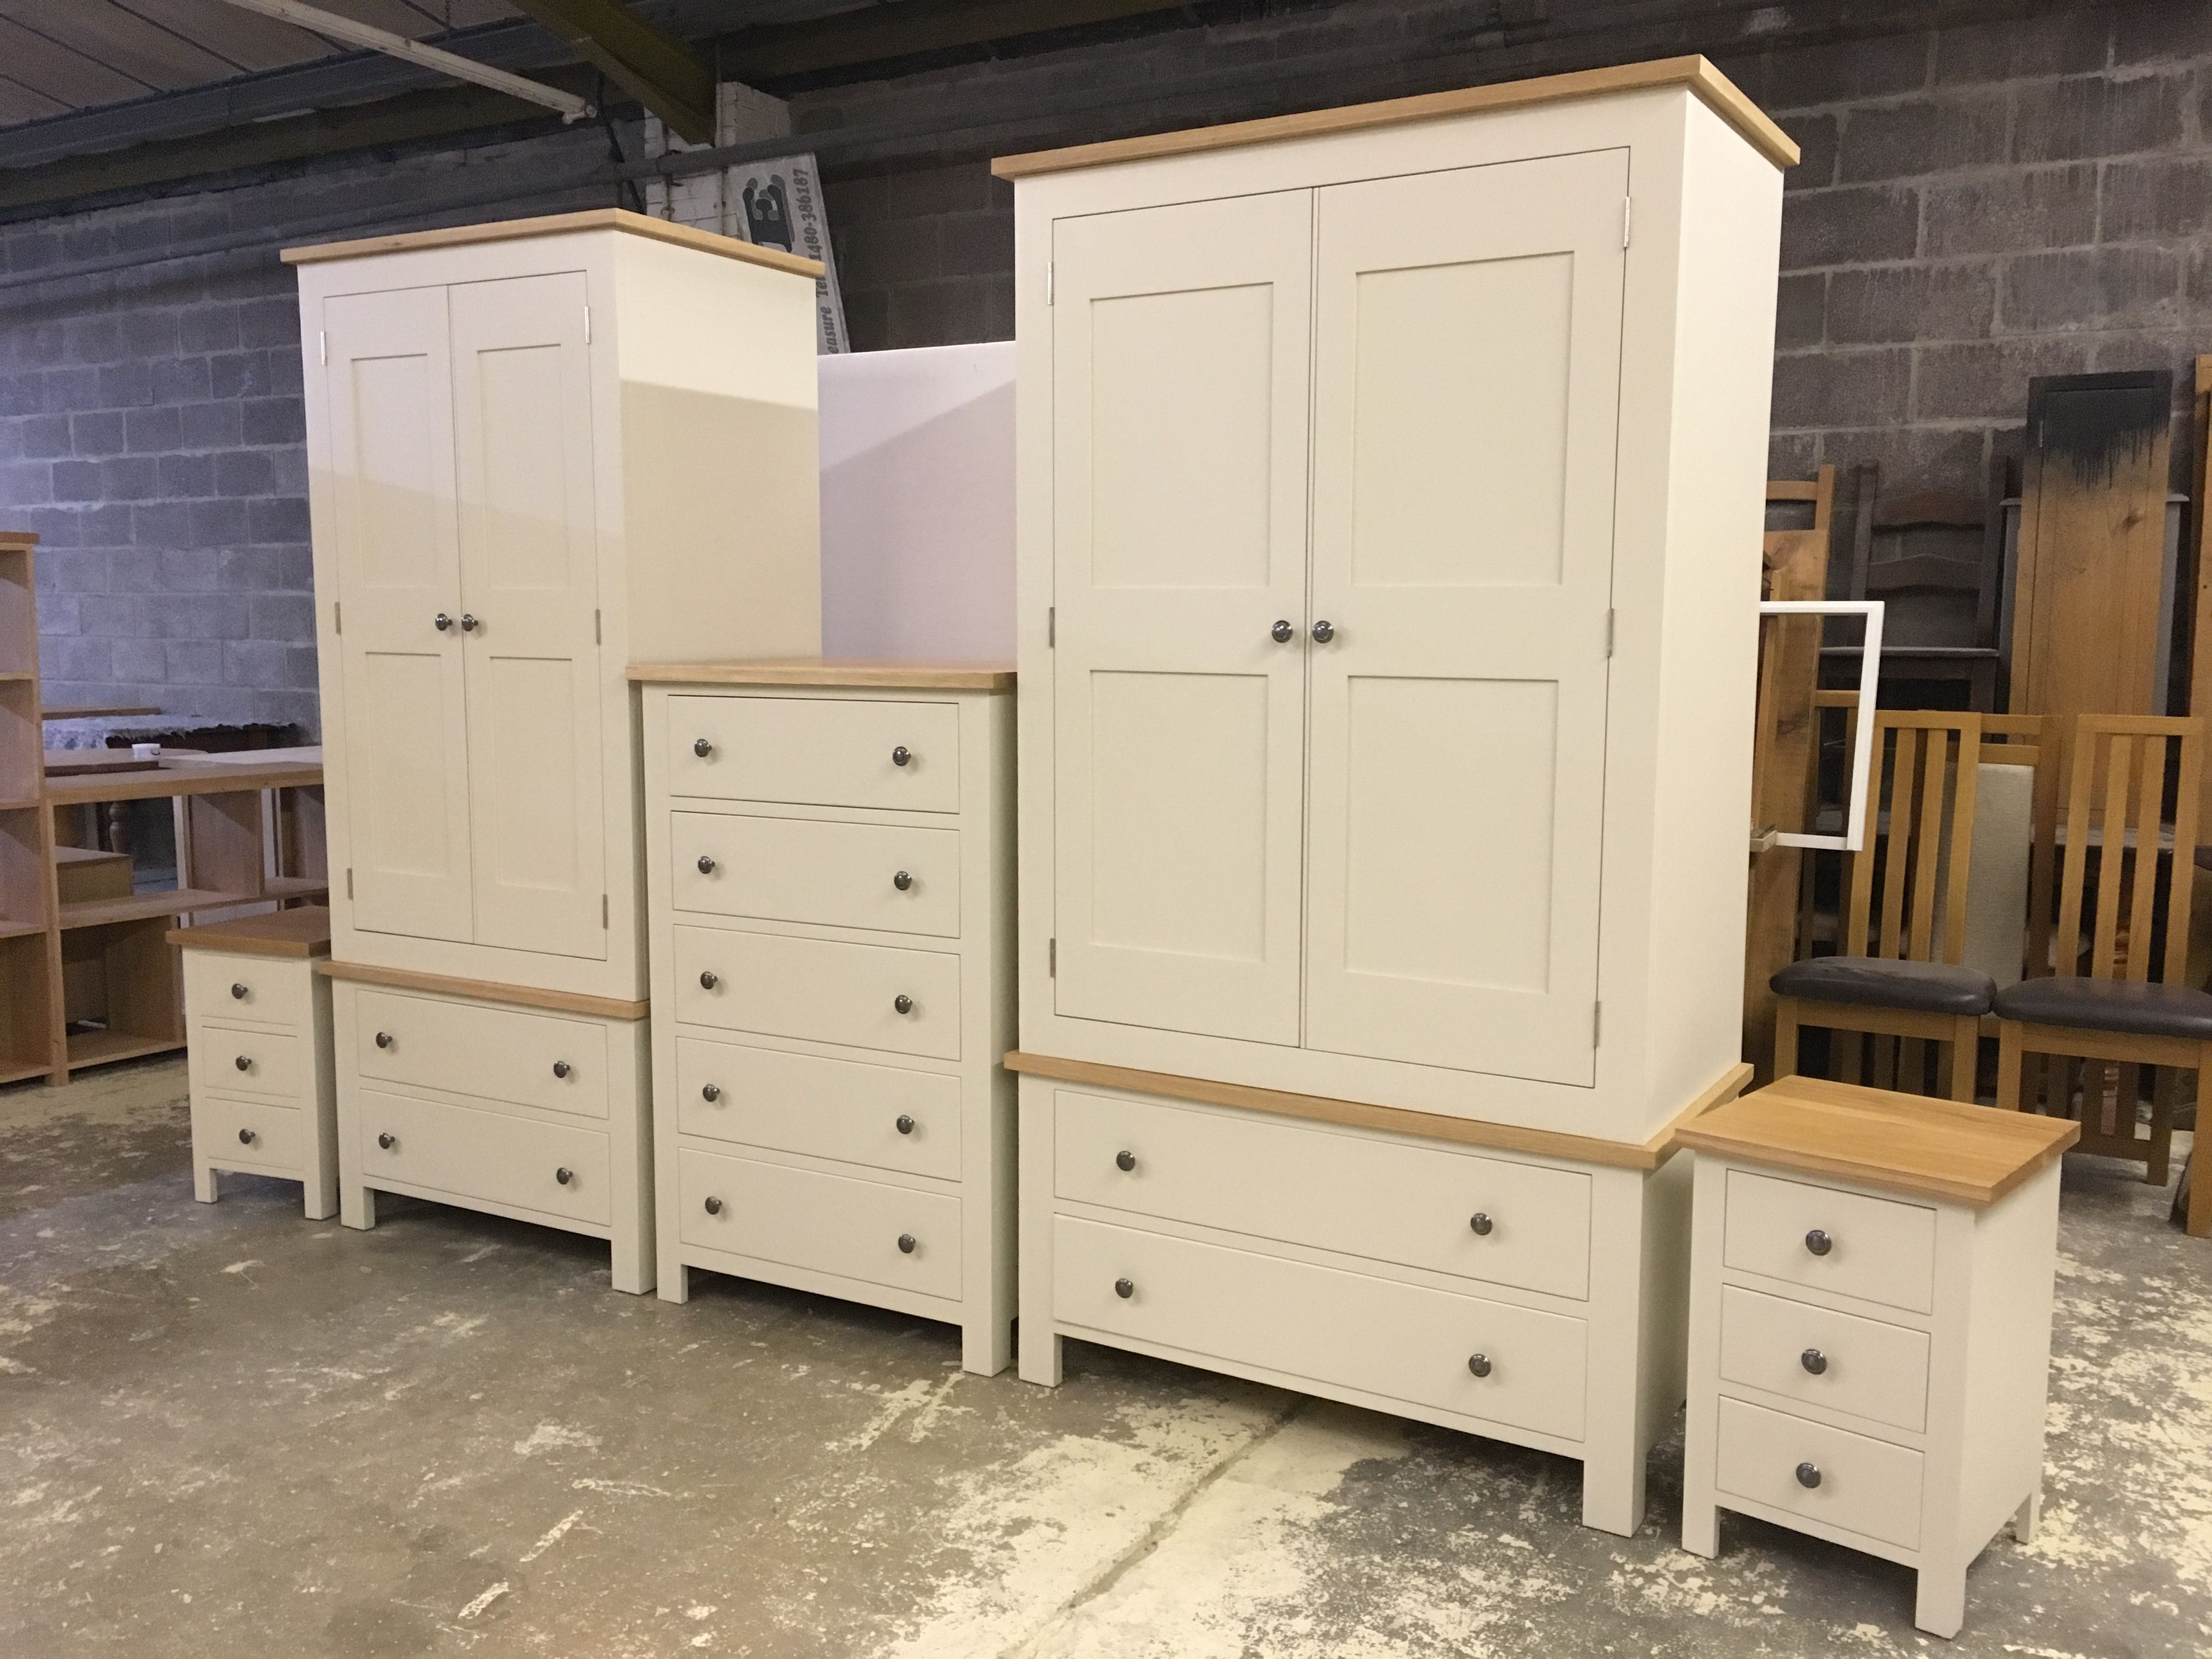 Bespoke and made to order bedroom furniture. CAN BE ANY SIZE OR